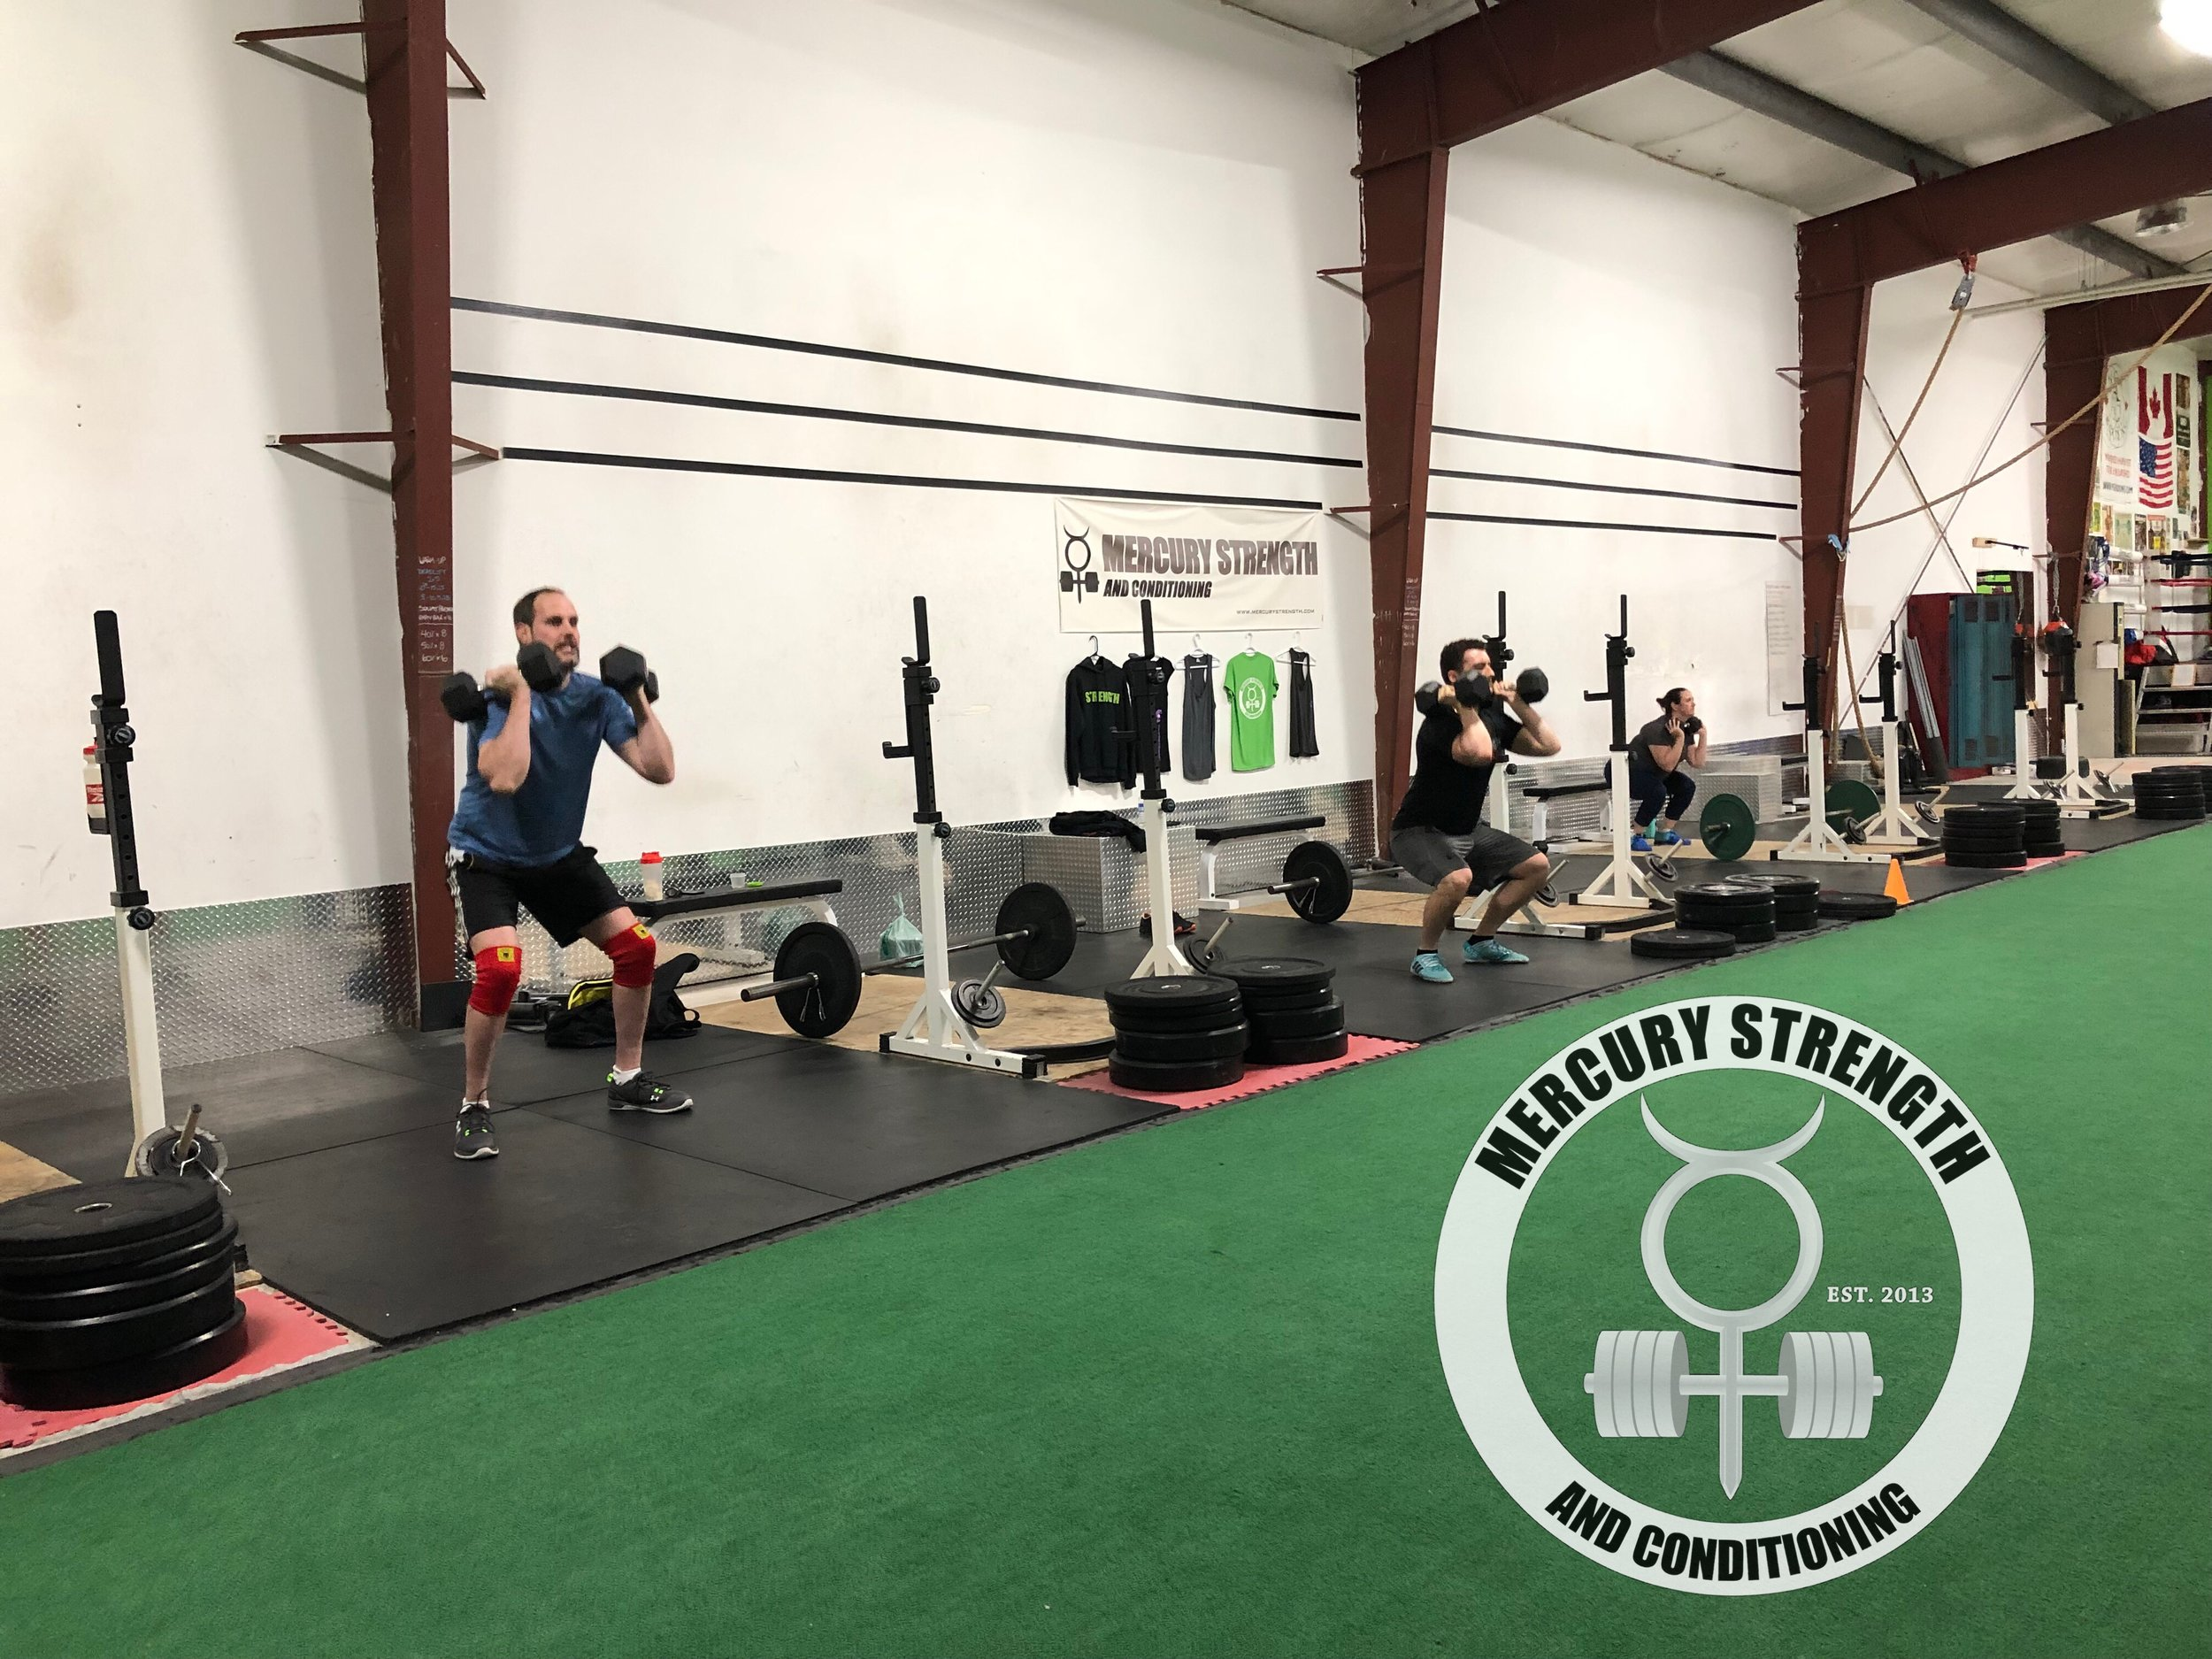 Gym-powerlifting-fitness-personal training-training-bootcamp-crossfit-kingston-kingston gym-kids-mercury-strength-conditioning-athlete-dumbbell front squat